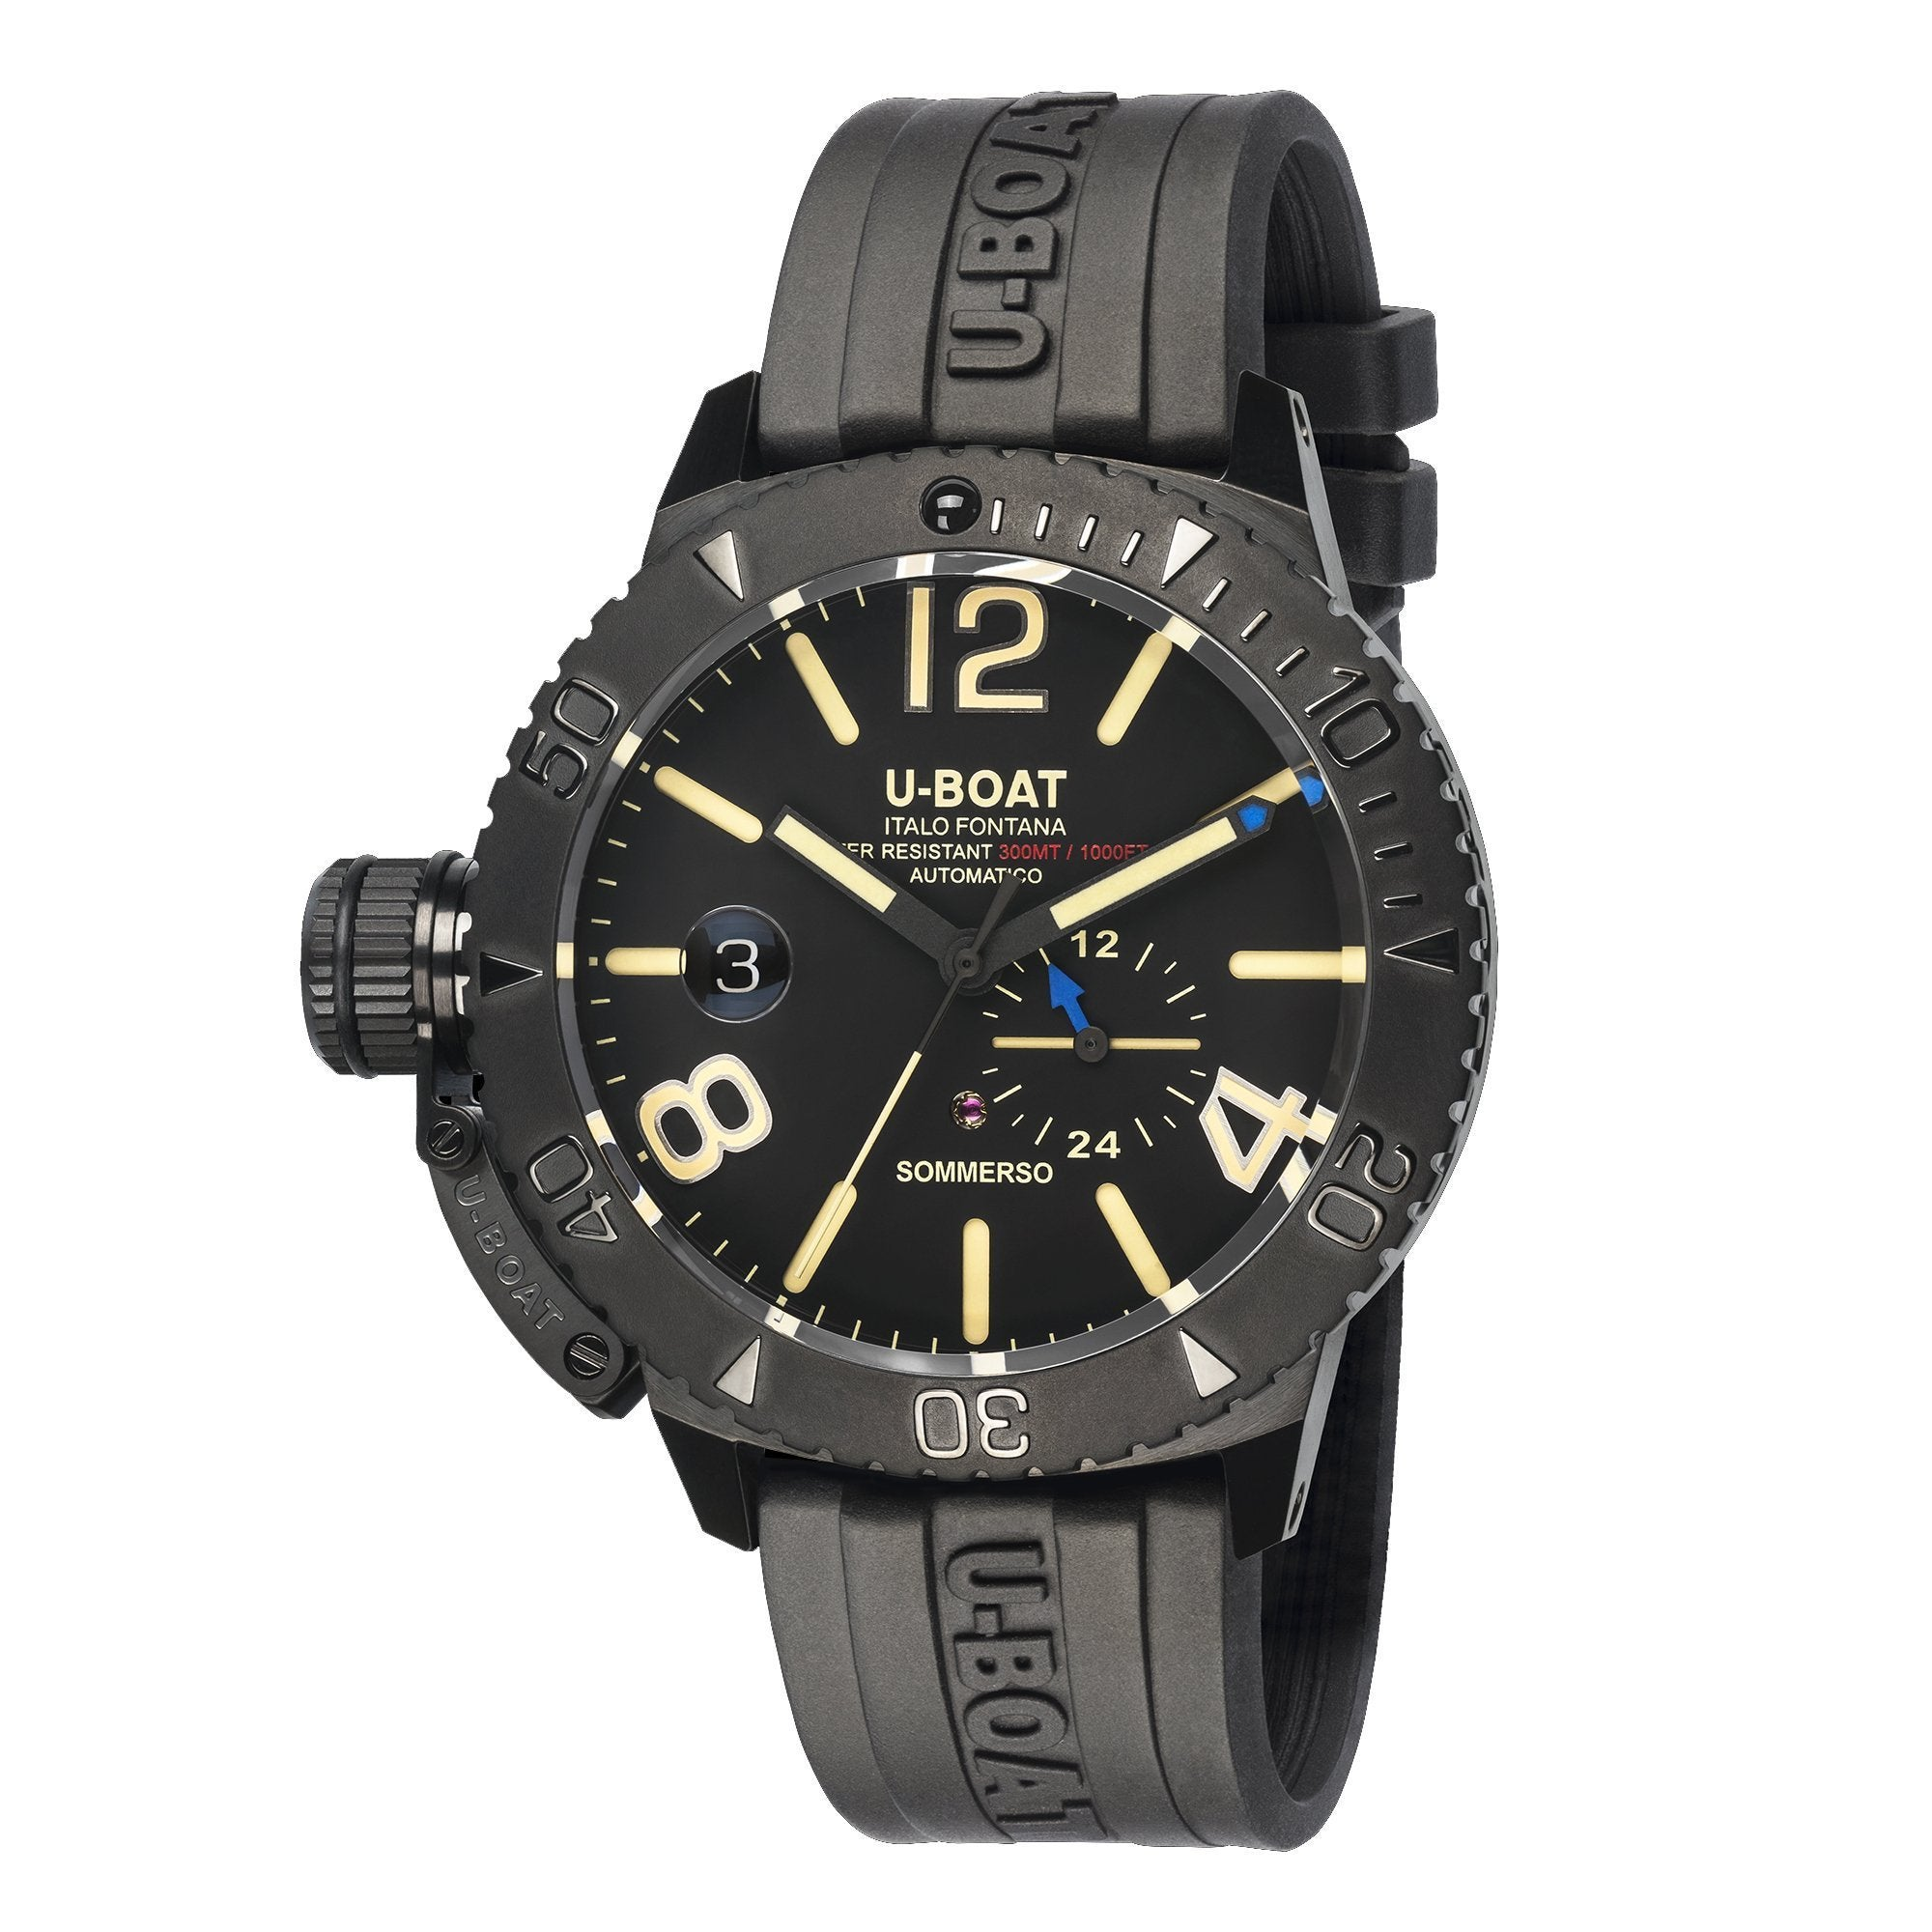 U-Boat Sommerso 46 Diver Date Black DLC - Watches & Crystals